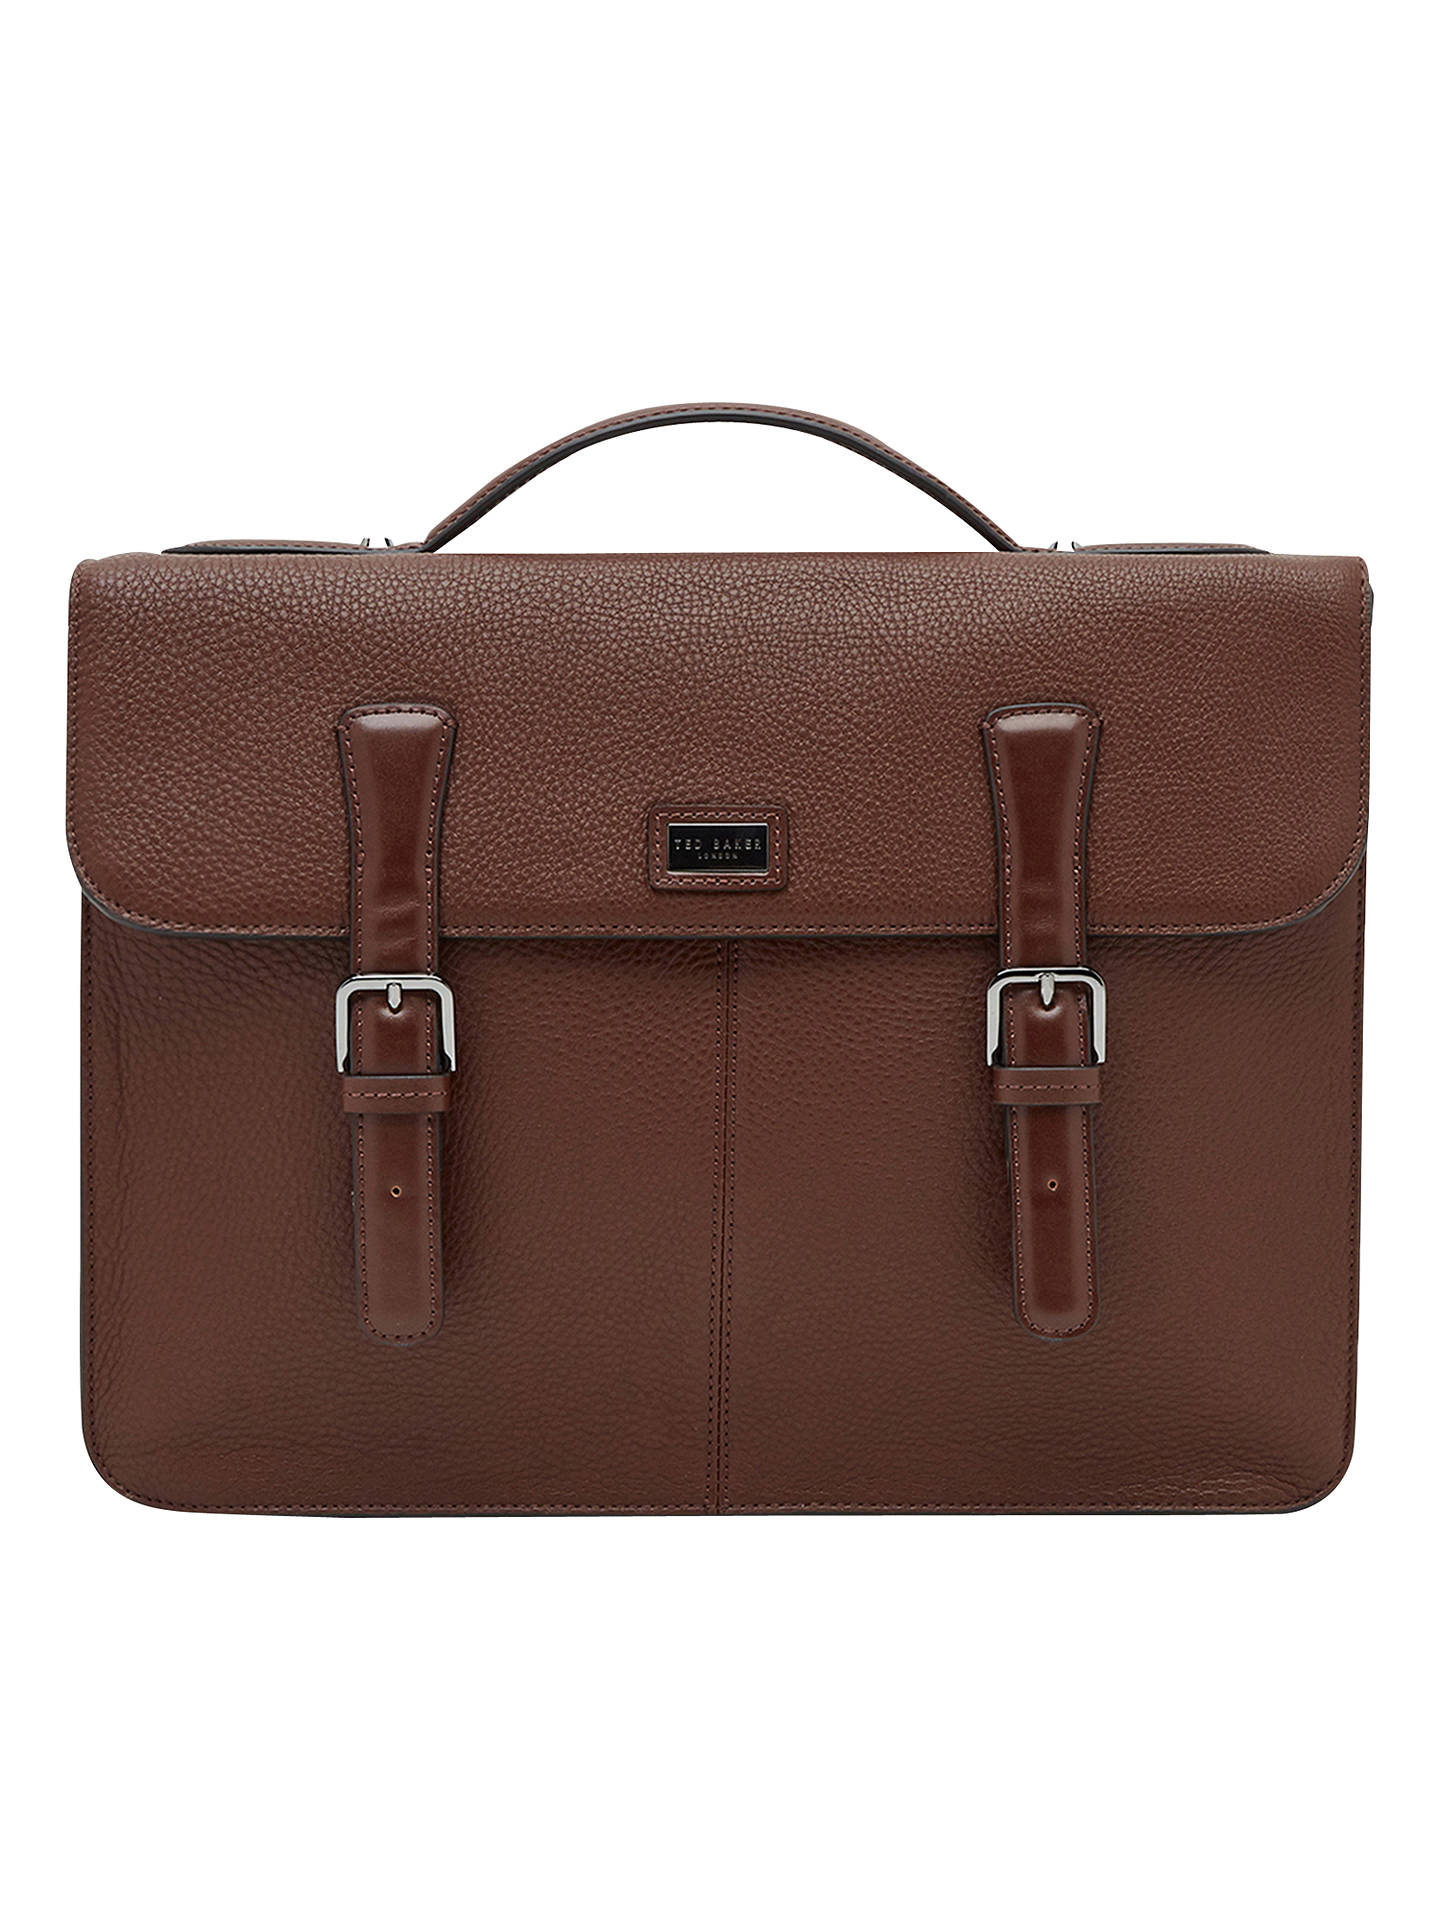 365479b569 Buy Ted Baker Bengal Leather Satchel